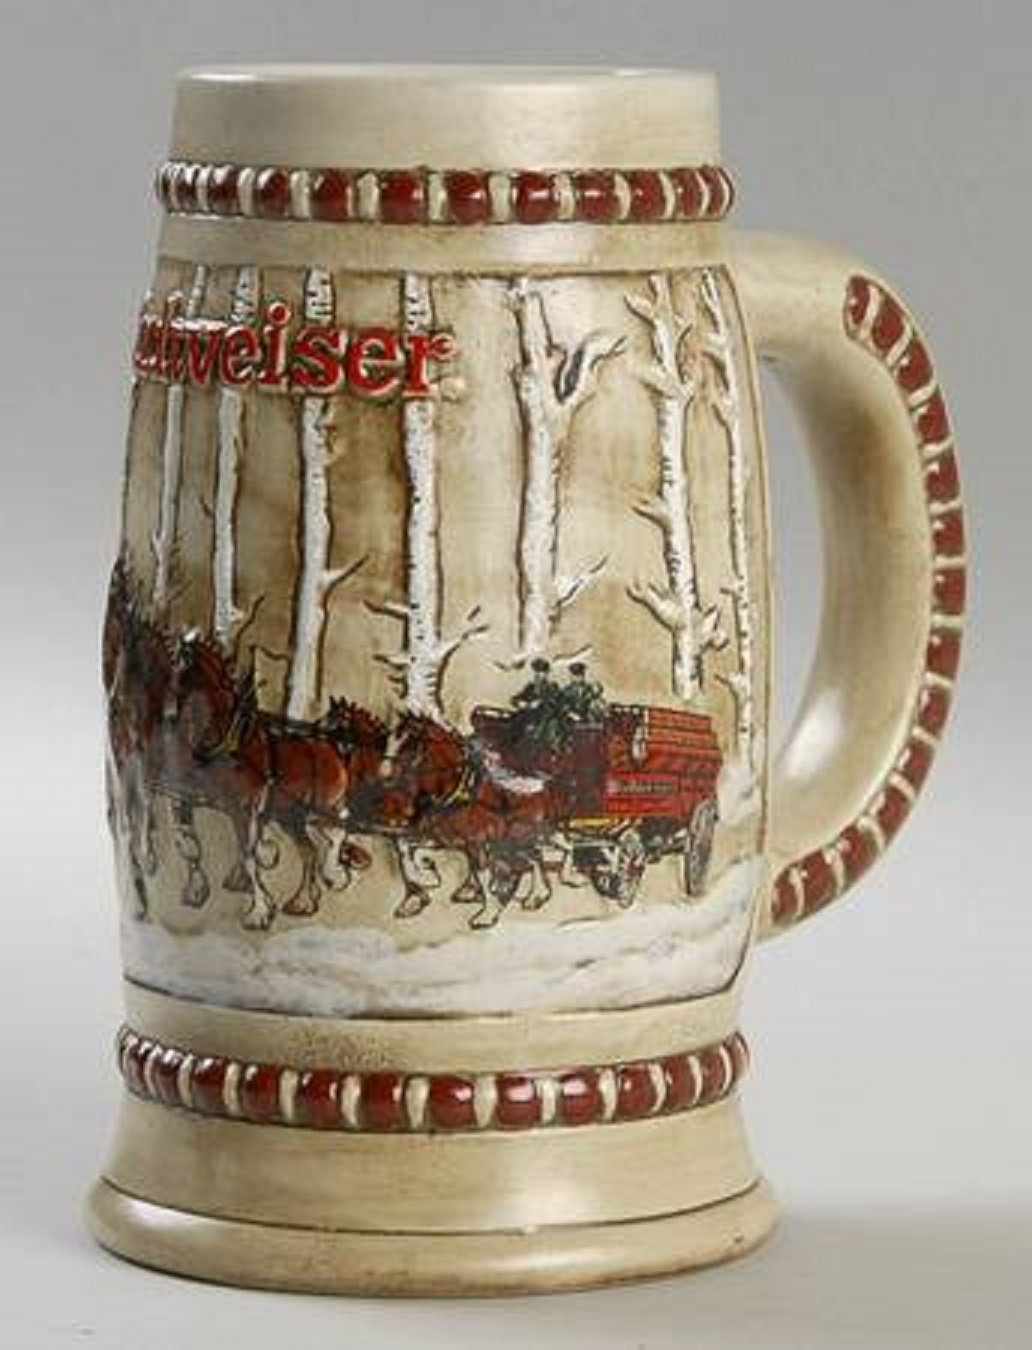 1981 BUDWEISER HOLIDAY BEER STEIN / MUG - Snowy Woodlands CS-50